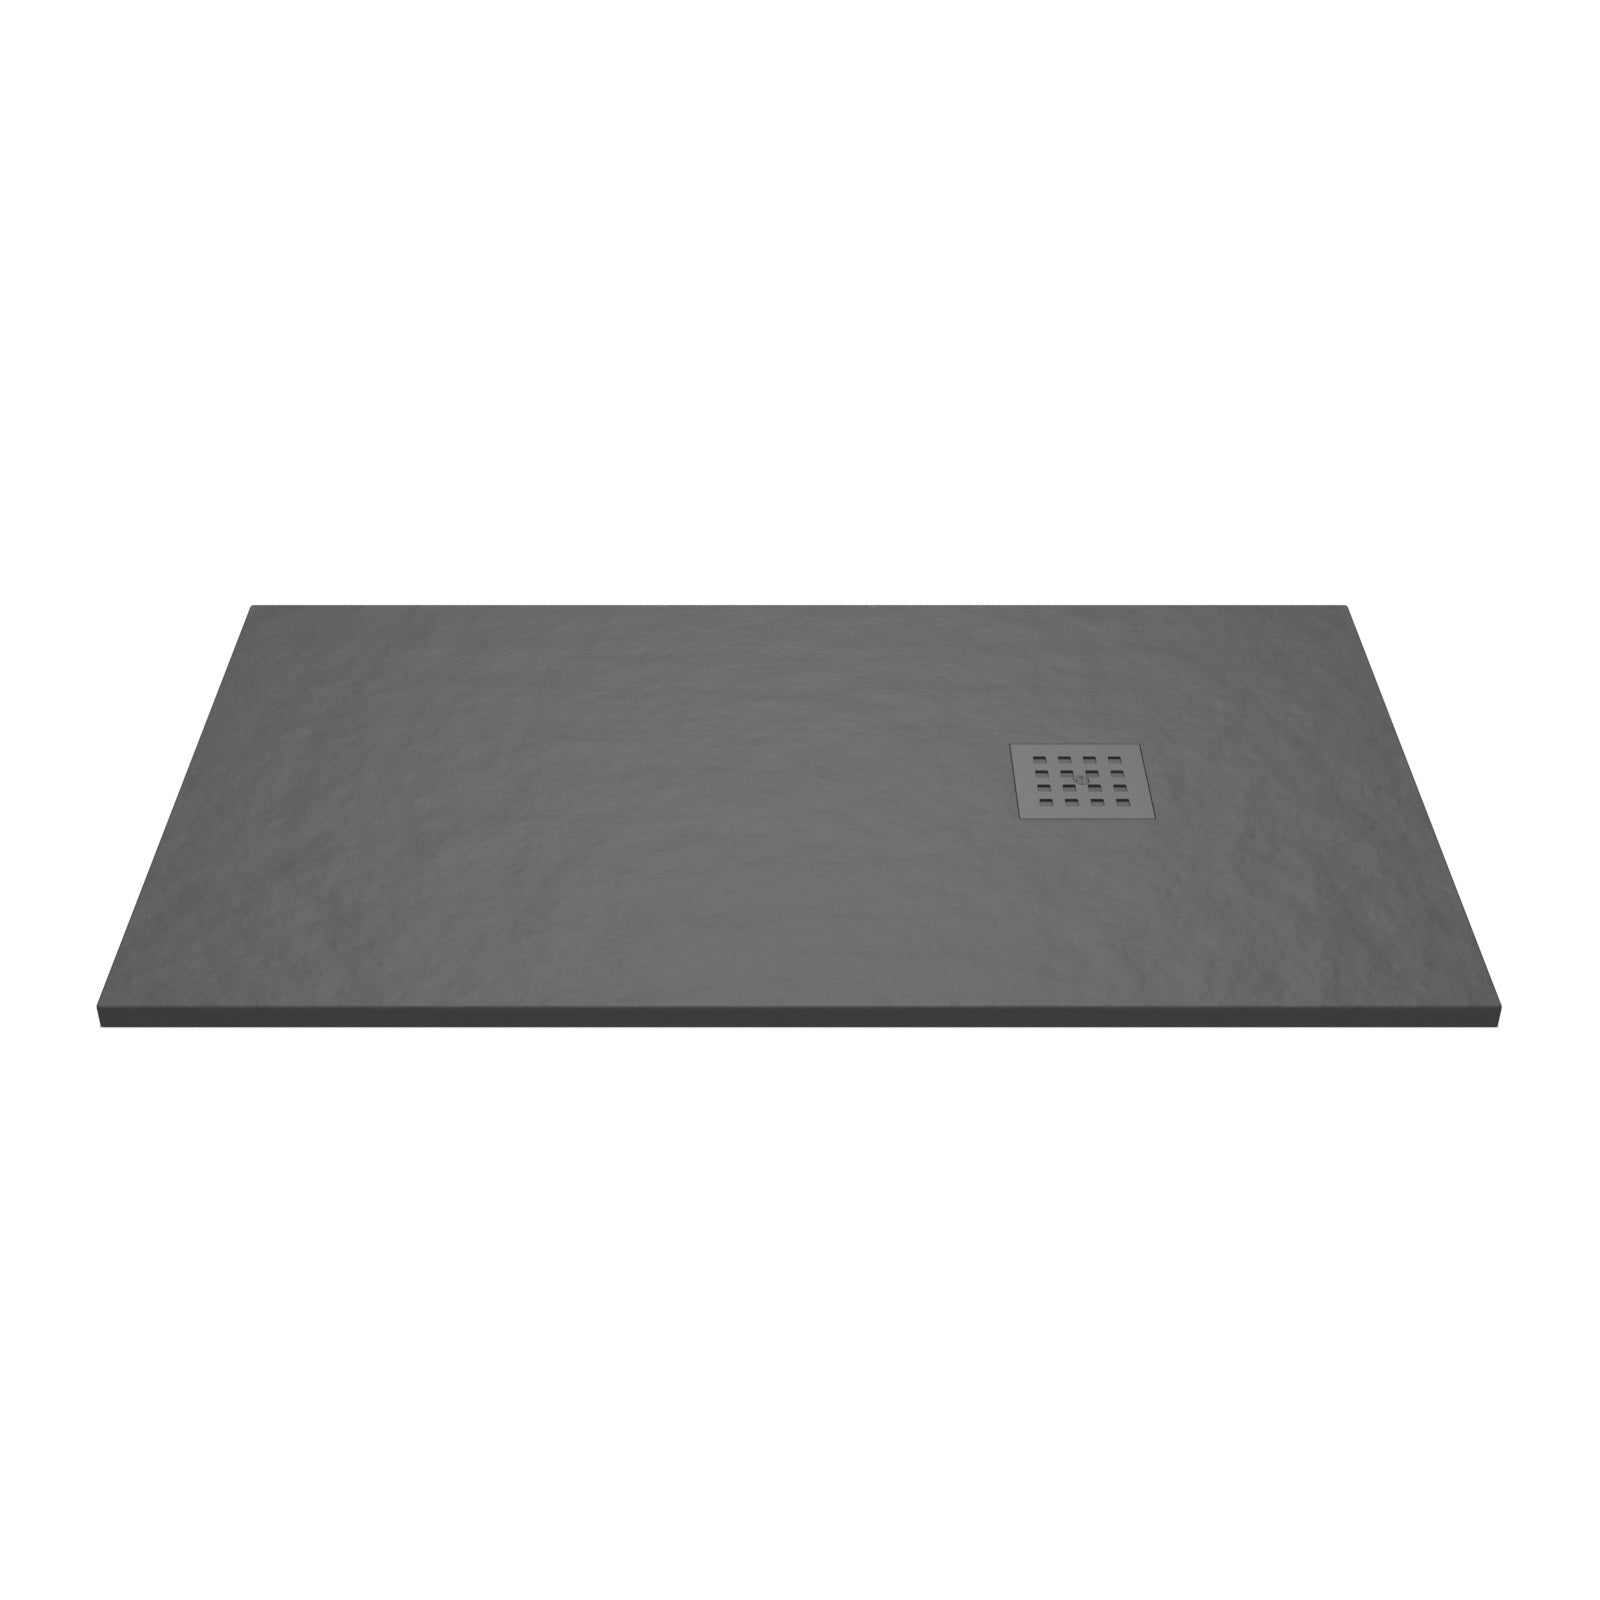 Give your shower a sleek and natural look with this Graphite Rectangle Low Profile Shower Tray.